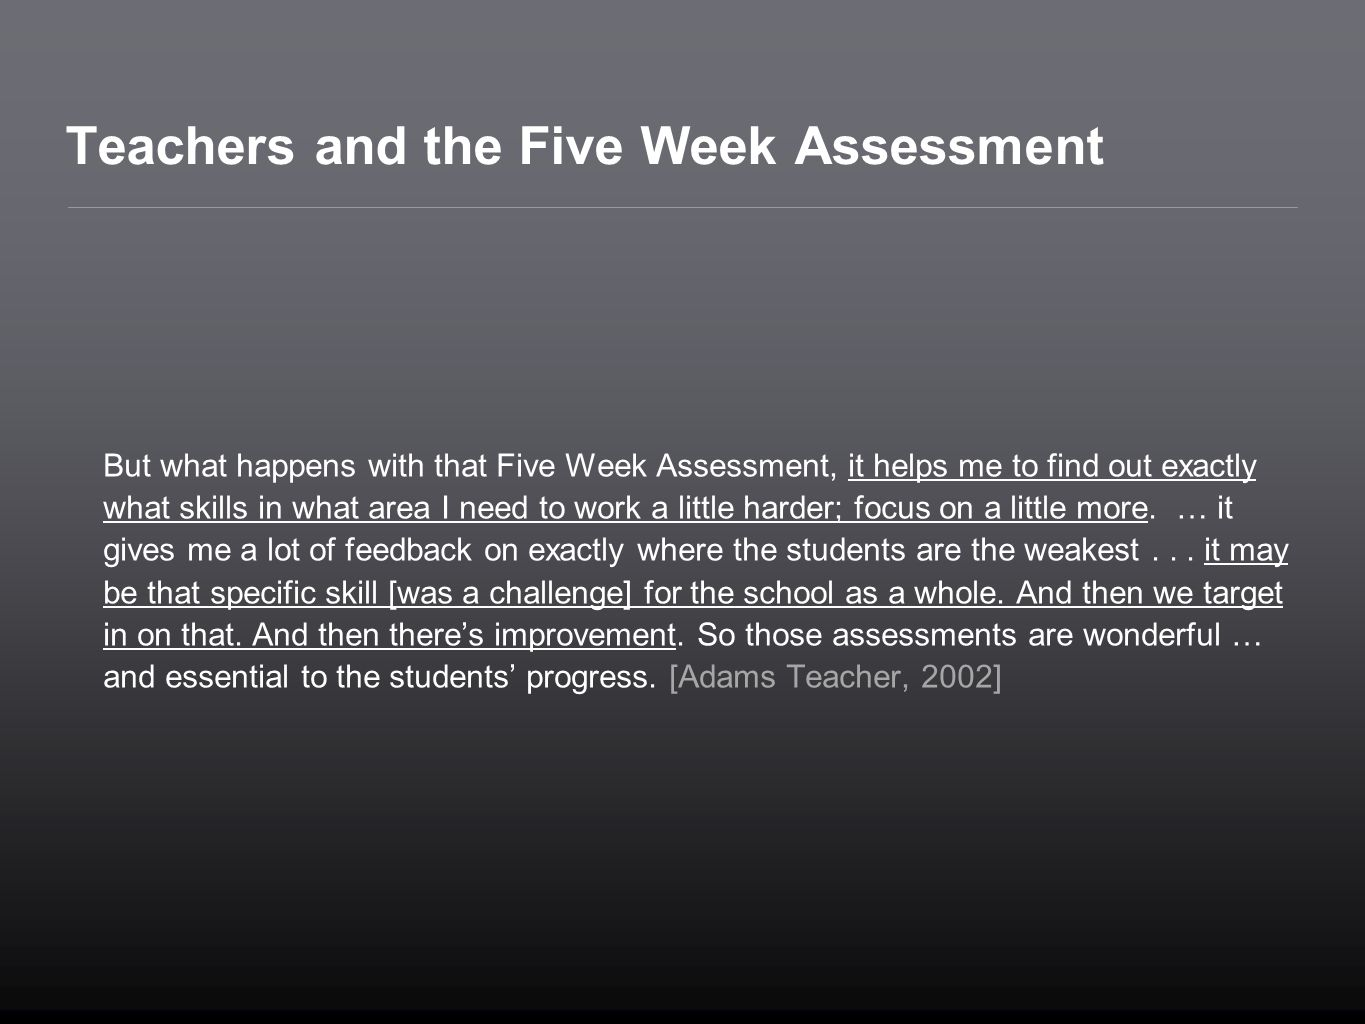 Teachers and the Five Week Assessment